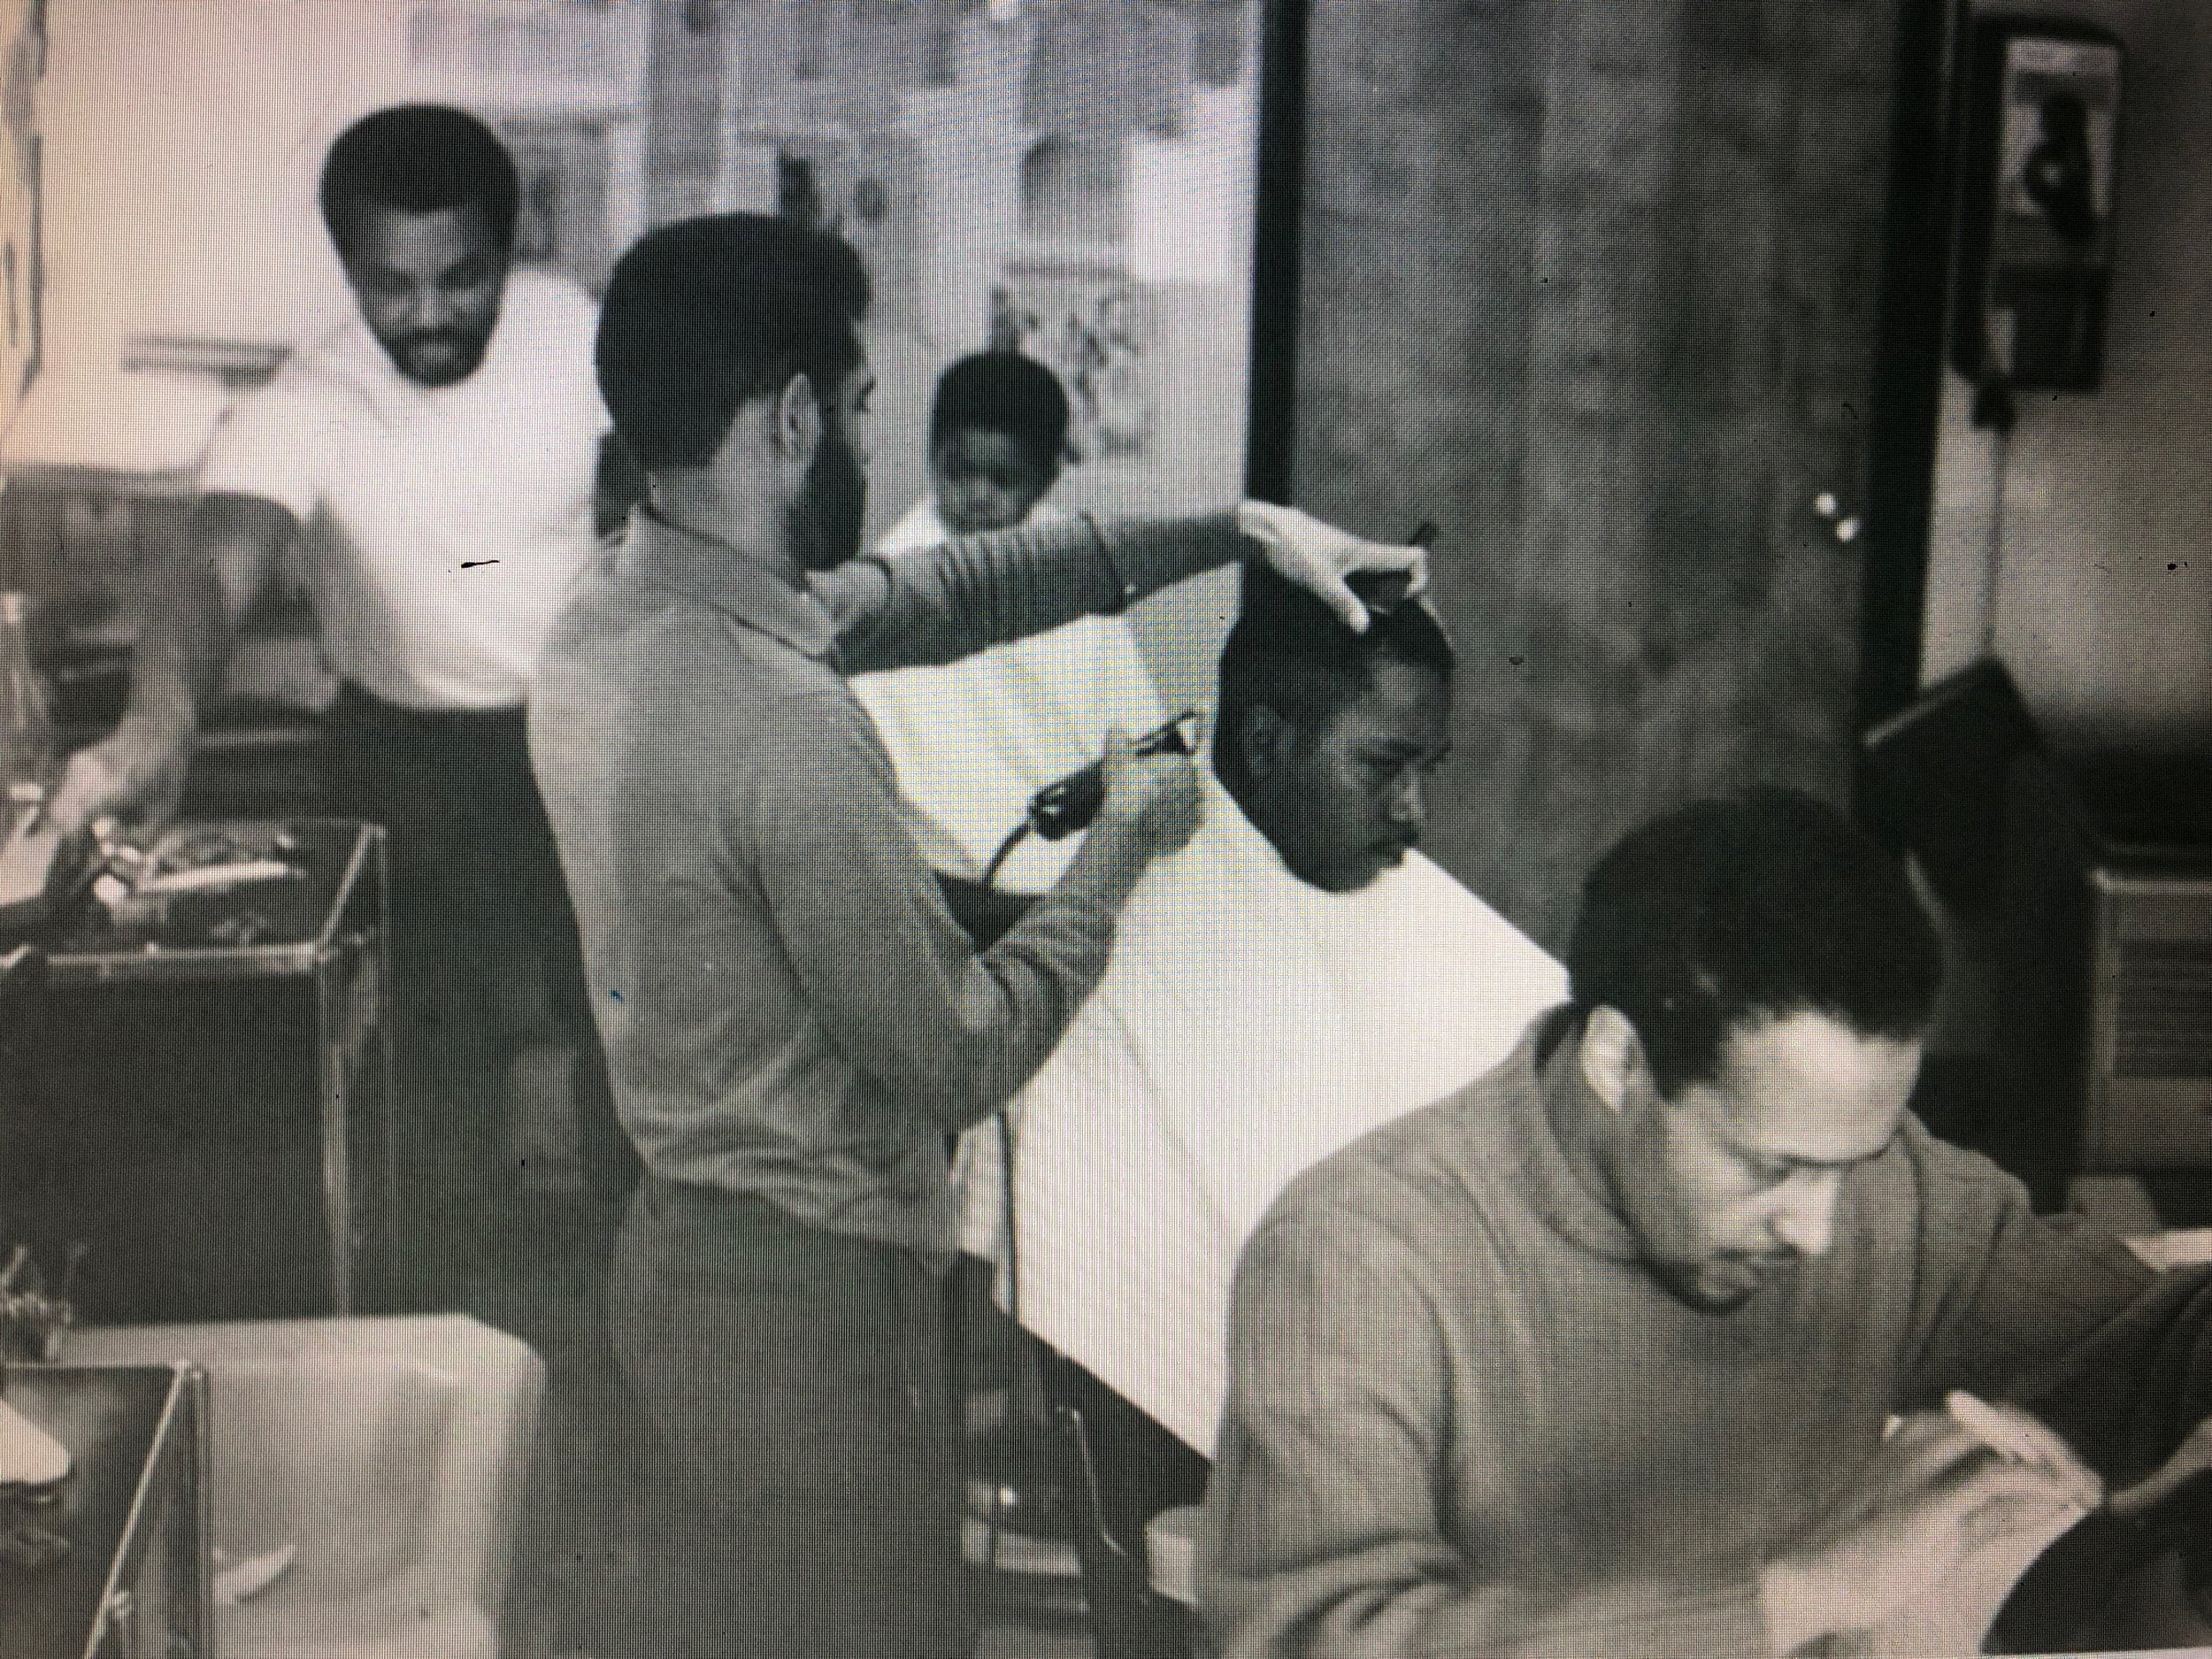 Chambers and Goodwin at Goodwin Barbershop